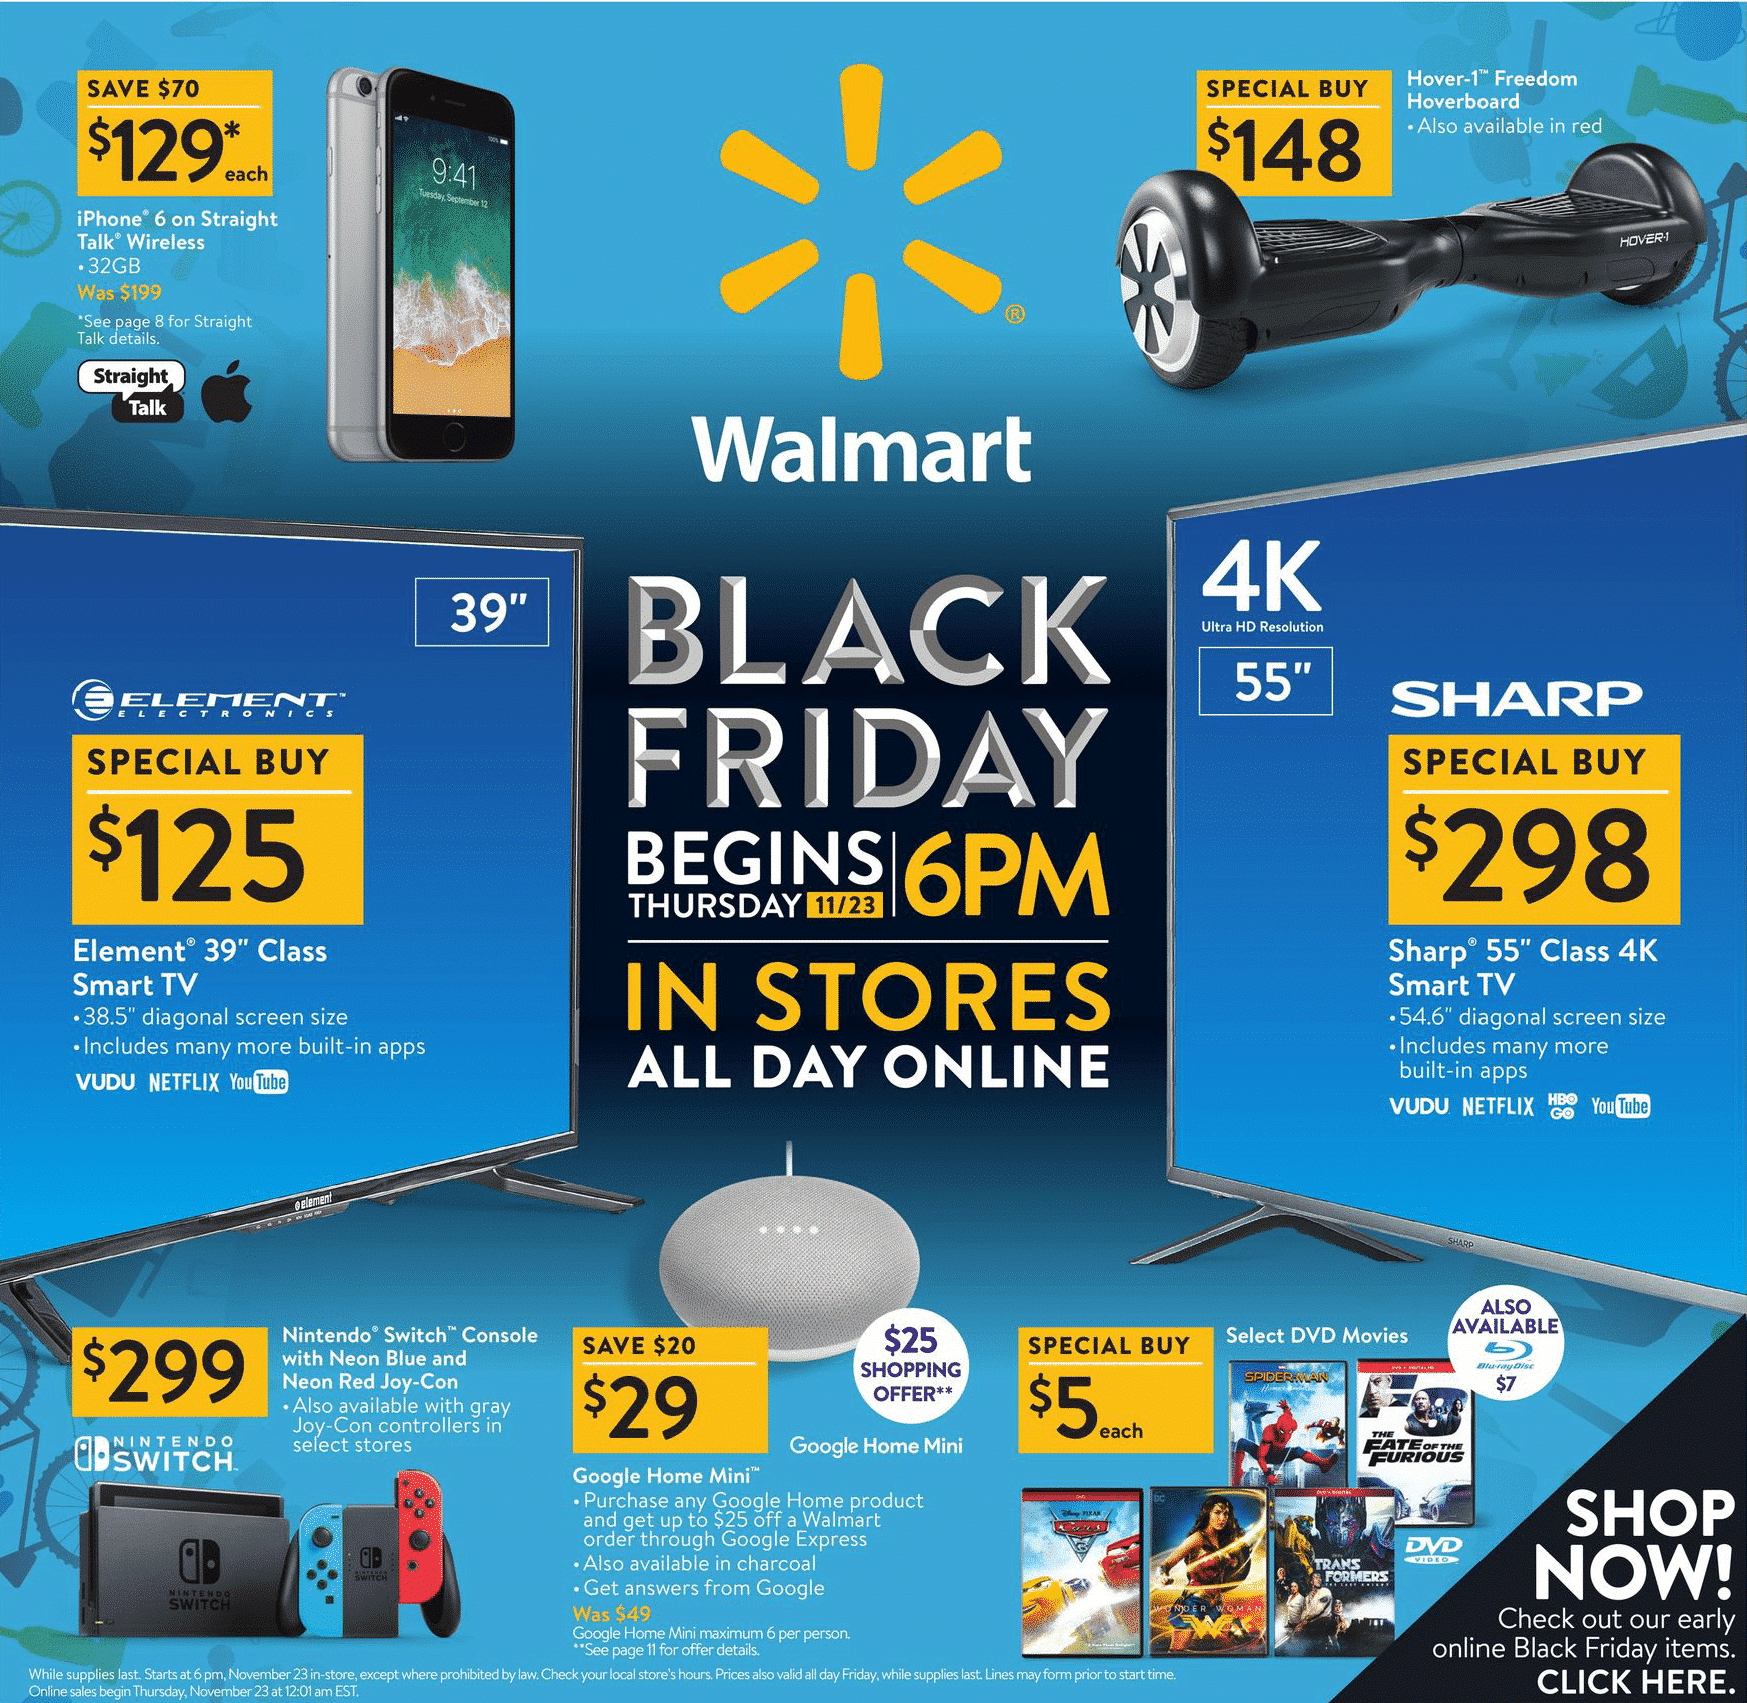 Walmart Deals, discounts and promo codes! This section is updated with Walmart deals & coupon codes. Coupons or promotions were active at the time of .